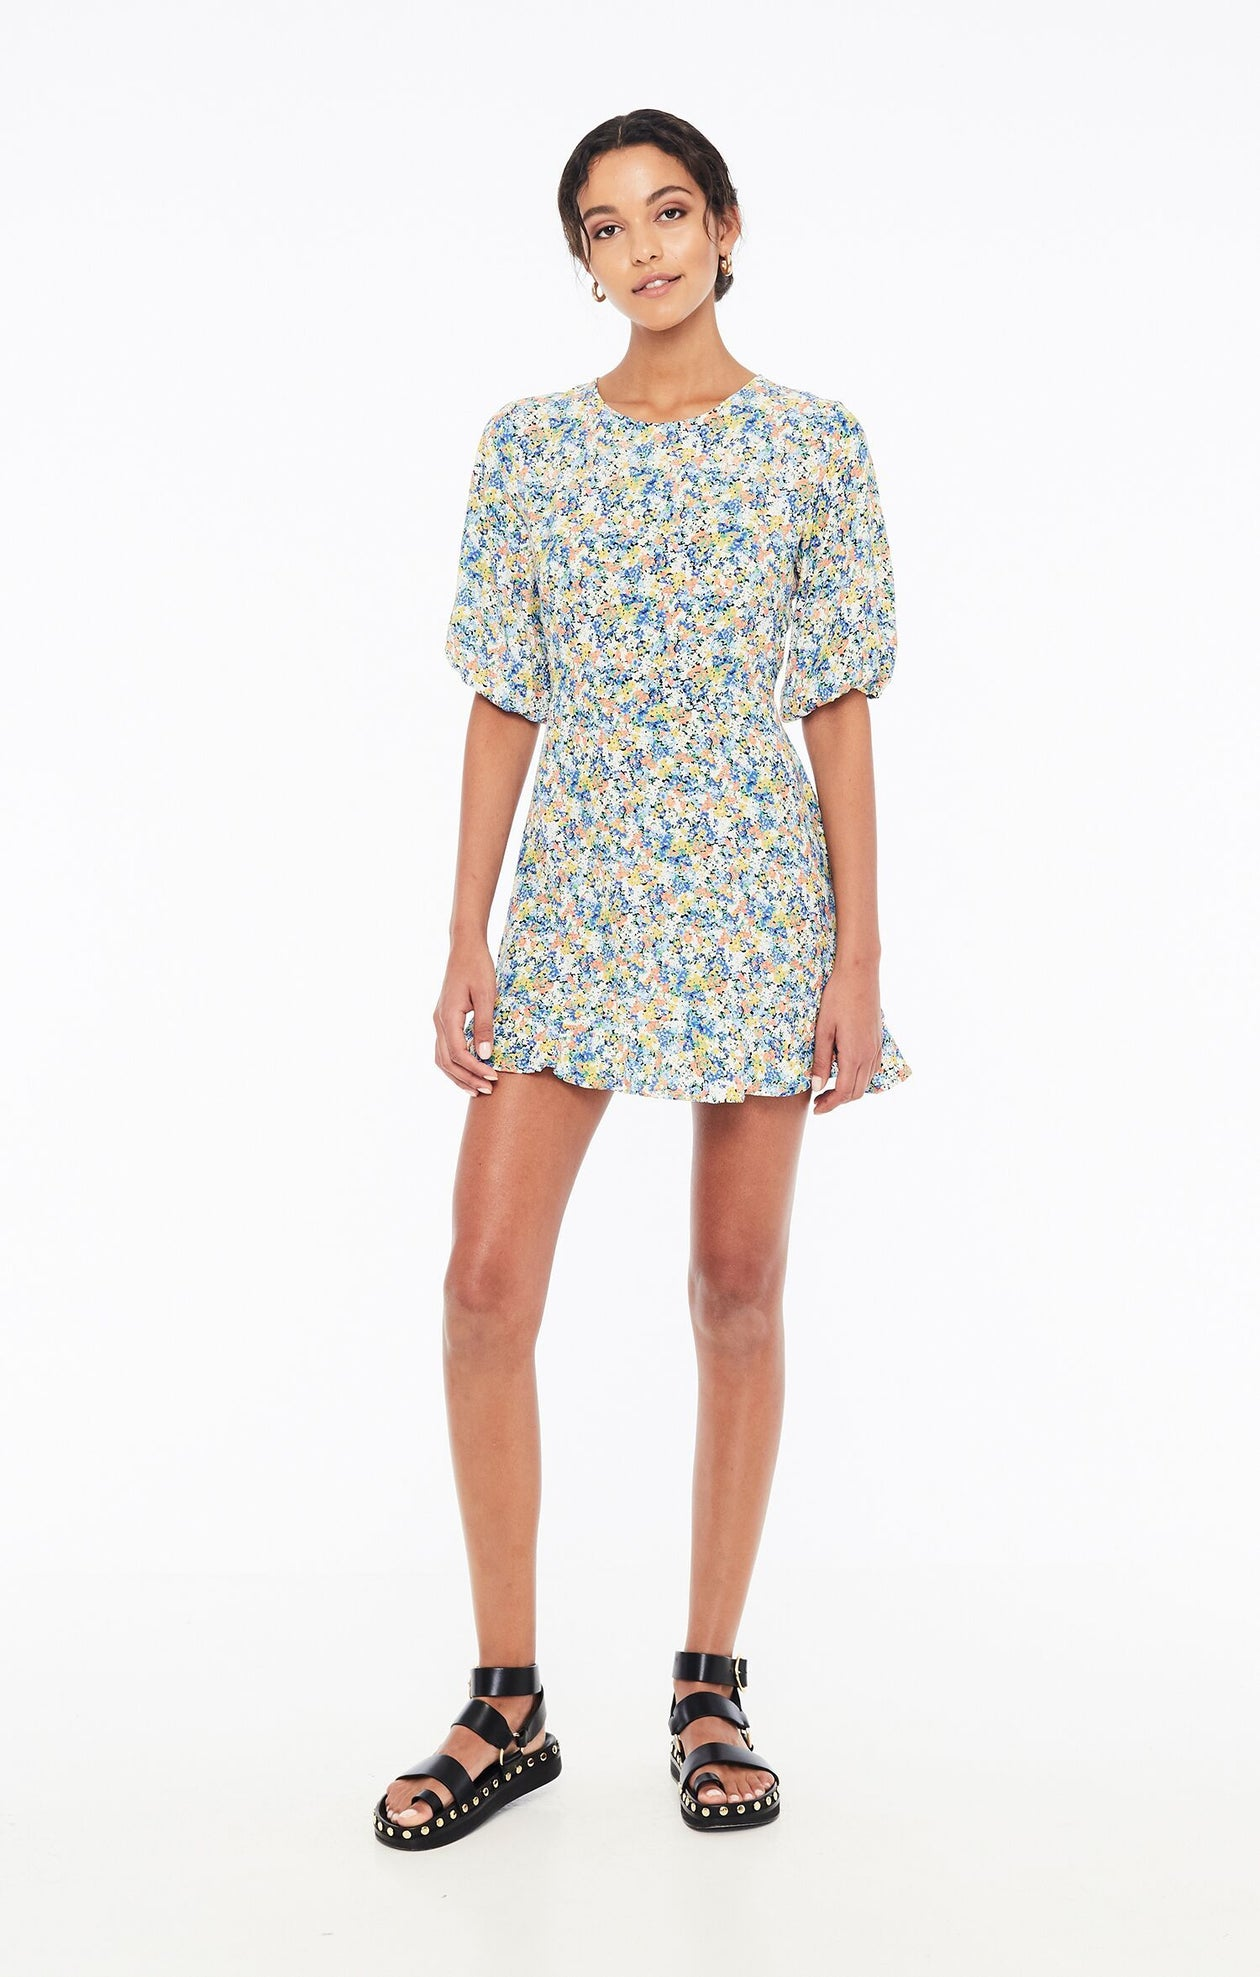 Jeanette Dress in Vionett Floral Print by Faithfull The Brand | Floral Printed Mini Dress